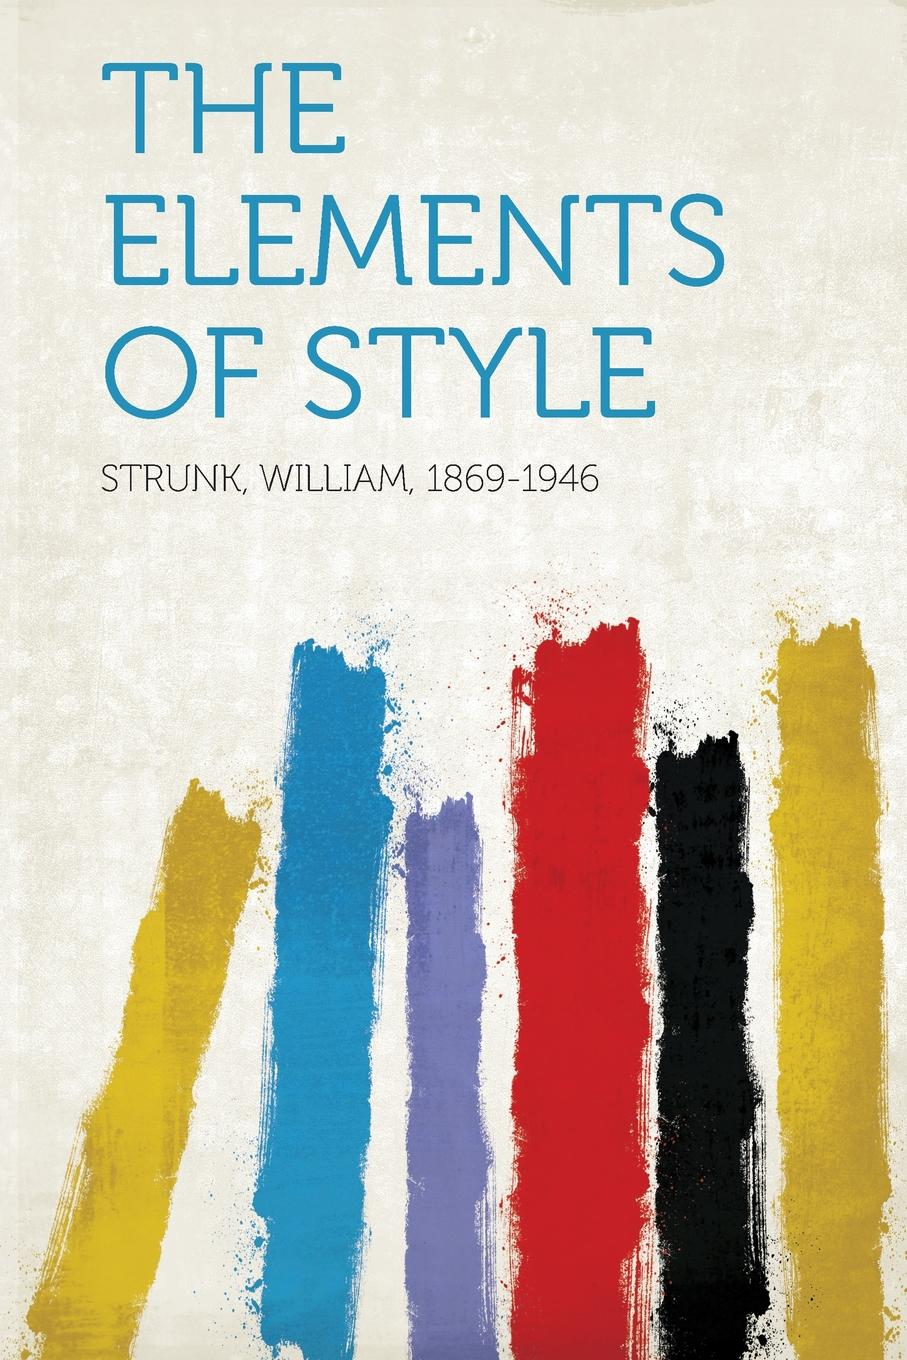 Strunk William 1869-1946 The Elements of Style william jr strunk the elements of style